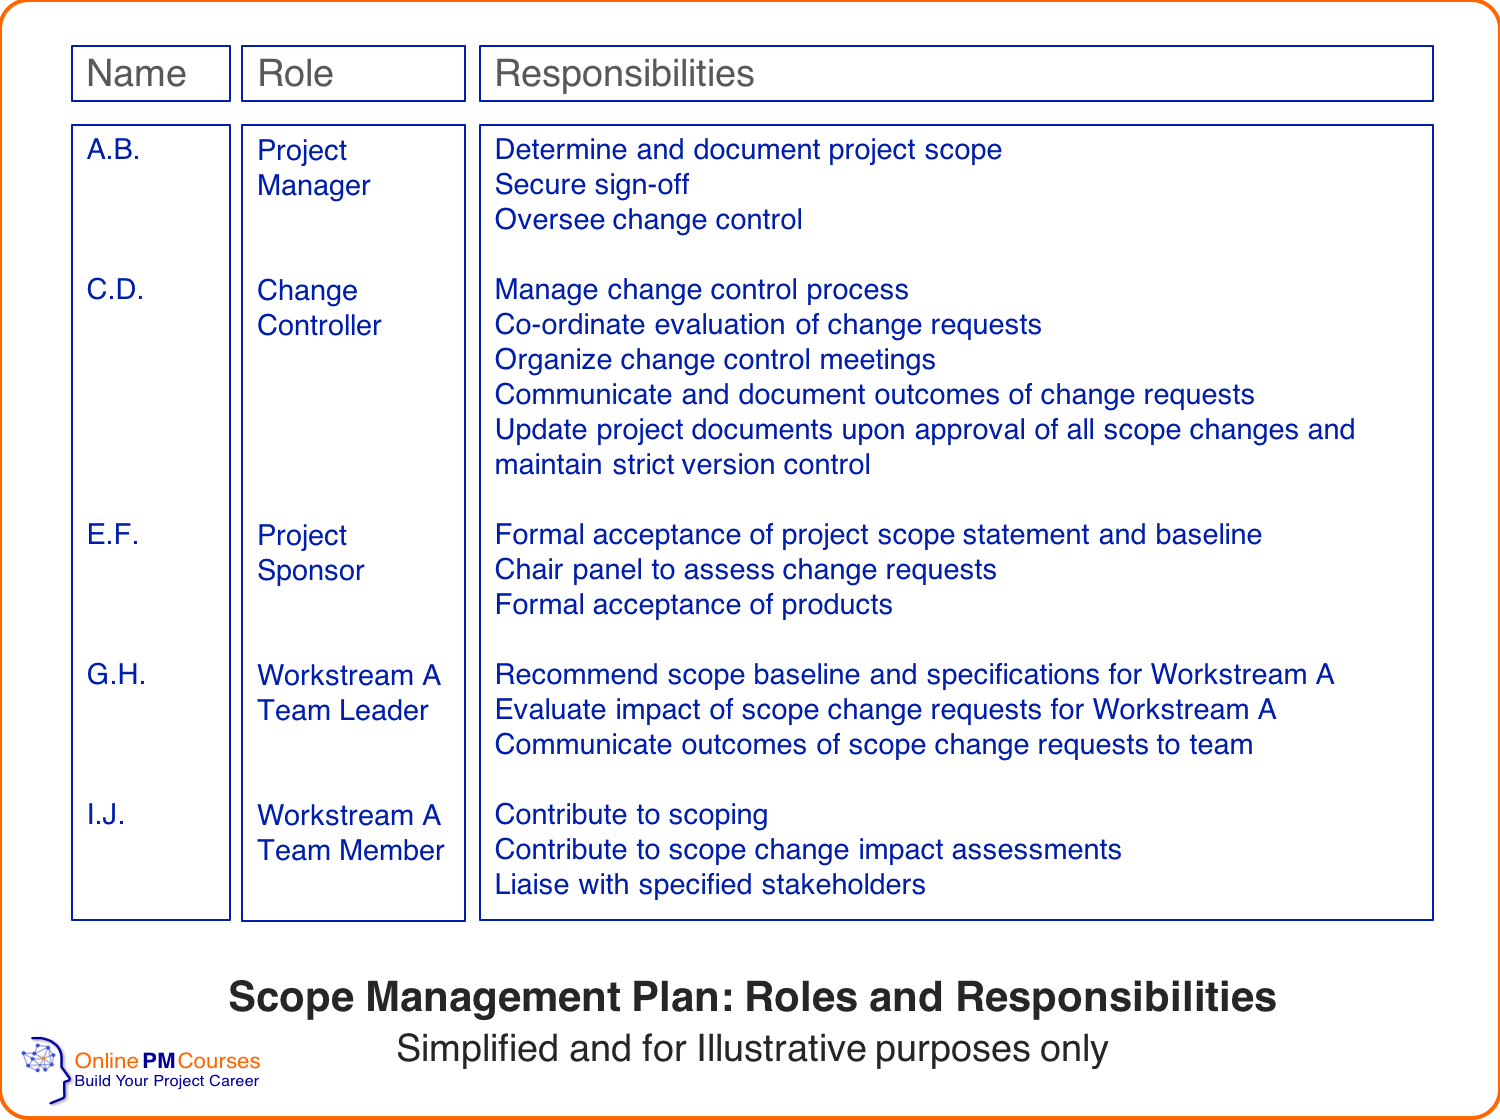 Scope Management Plan - Roles and Responsibilities